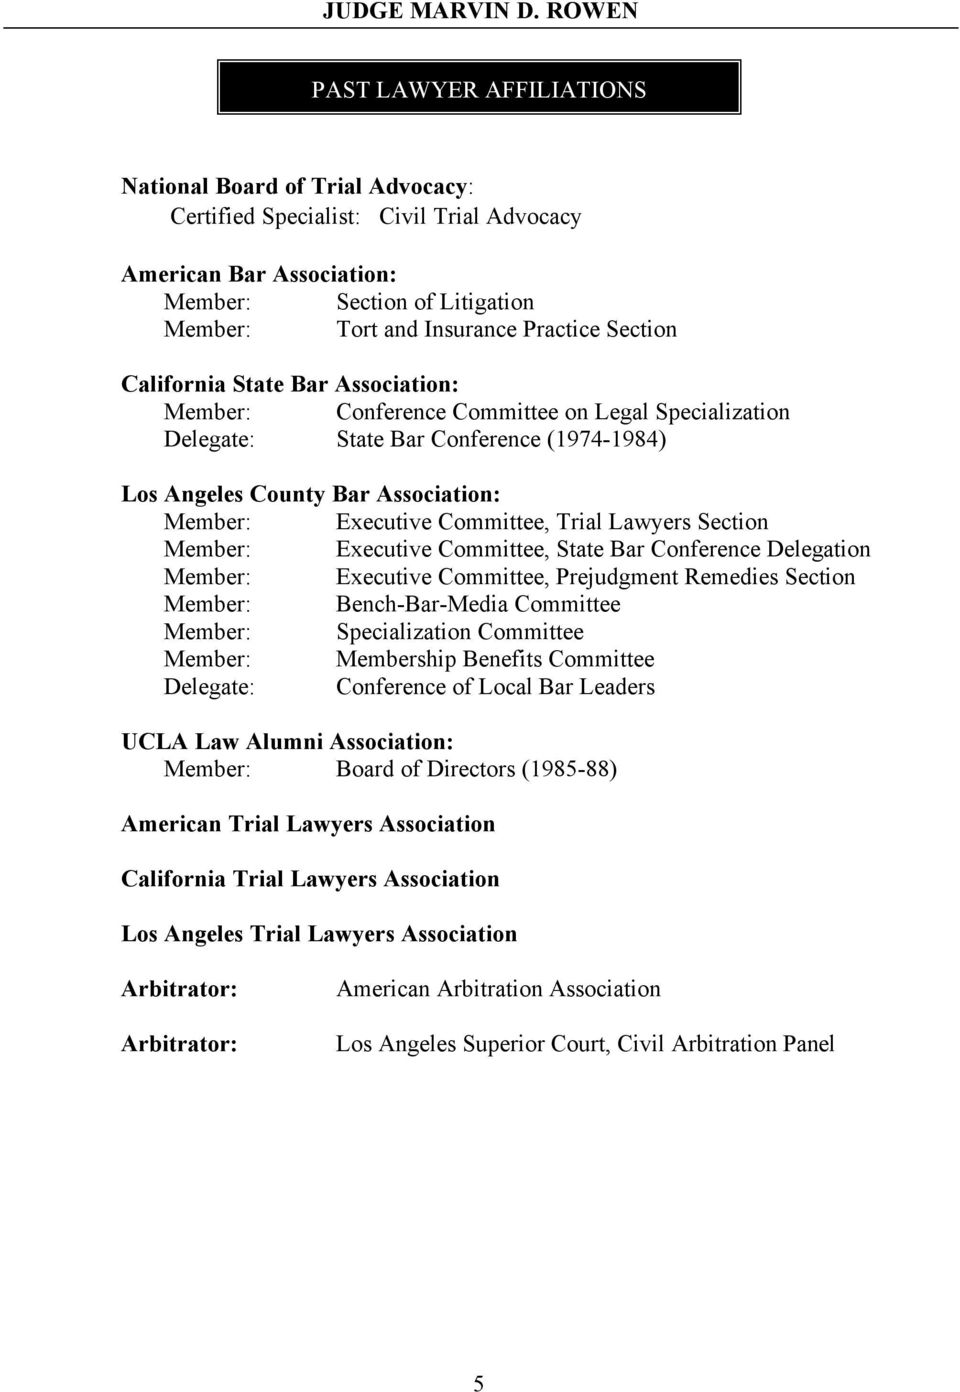 Committee, Trial Lawyers Section Member: Executive Committee, State Bar Conference Delegation Member: Executive Committee, Prejudgment Remedies Section Member: Bench-Bar-Media Committee Member: